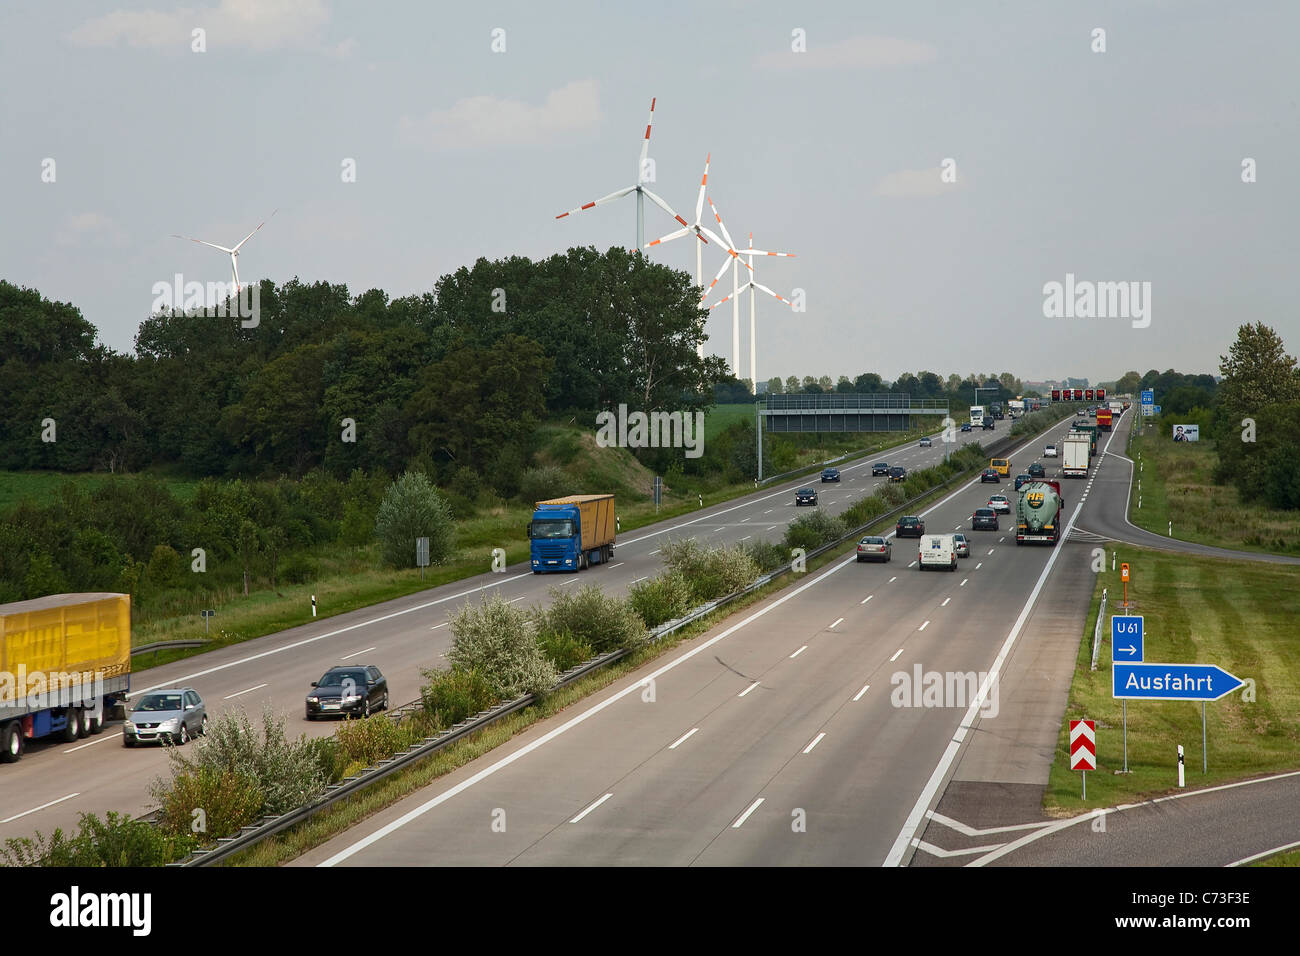 Wind turbines near Autobahn A2, Lower Saxony, Germany Stock Photo